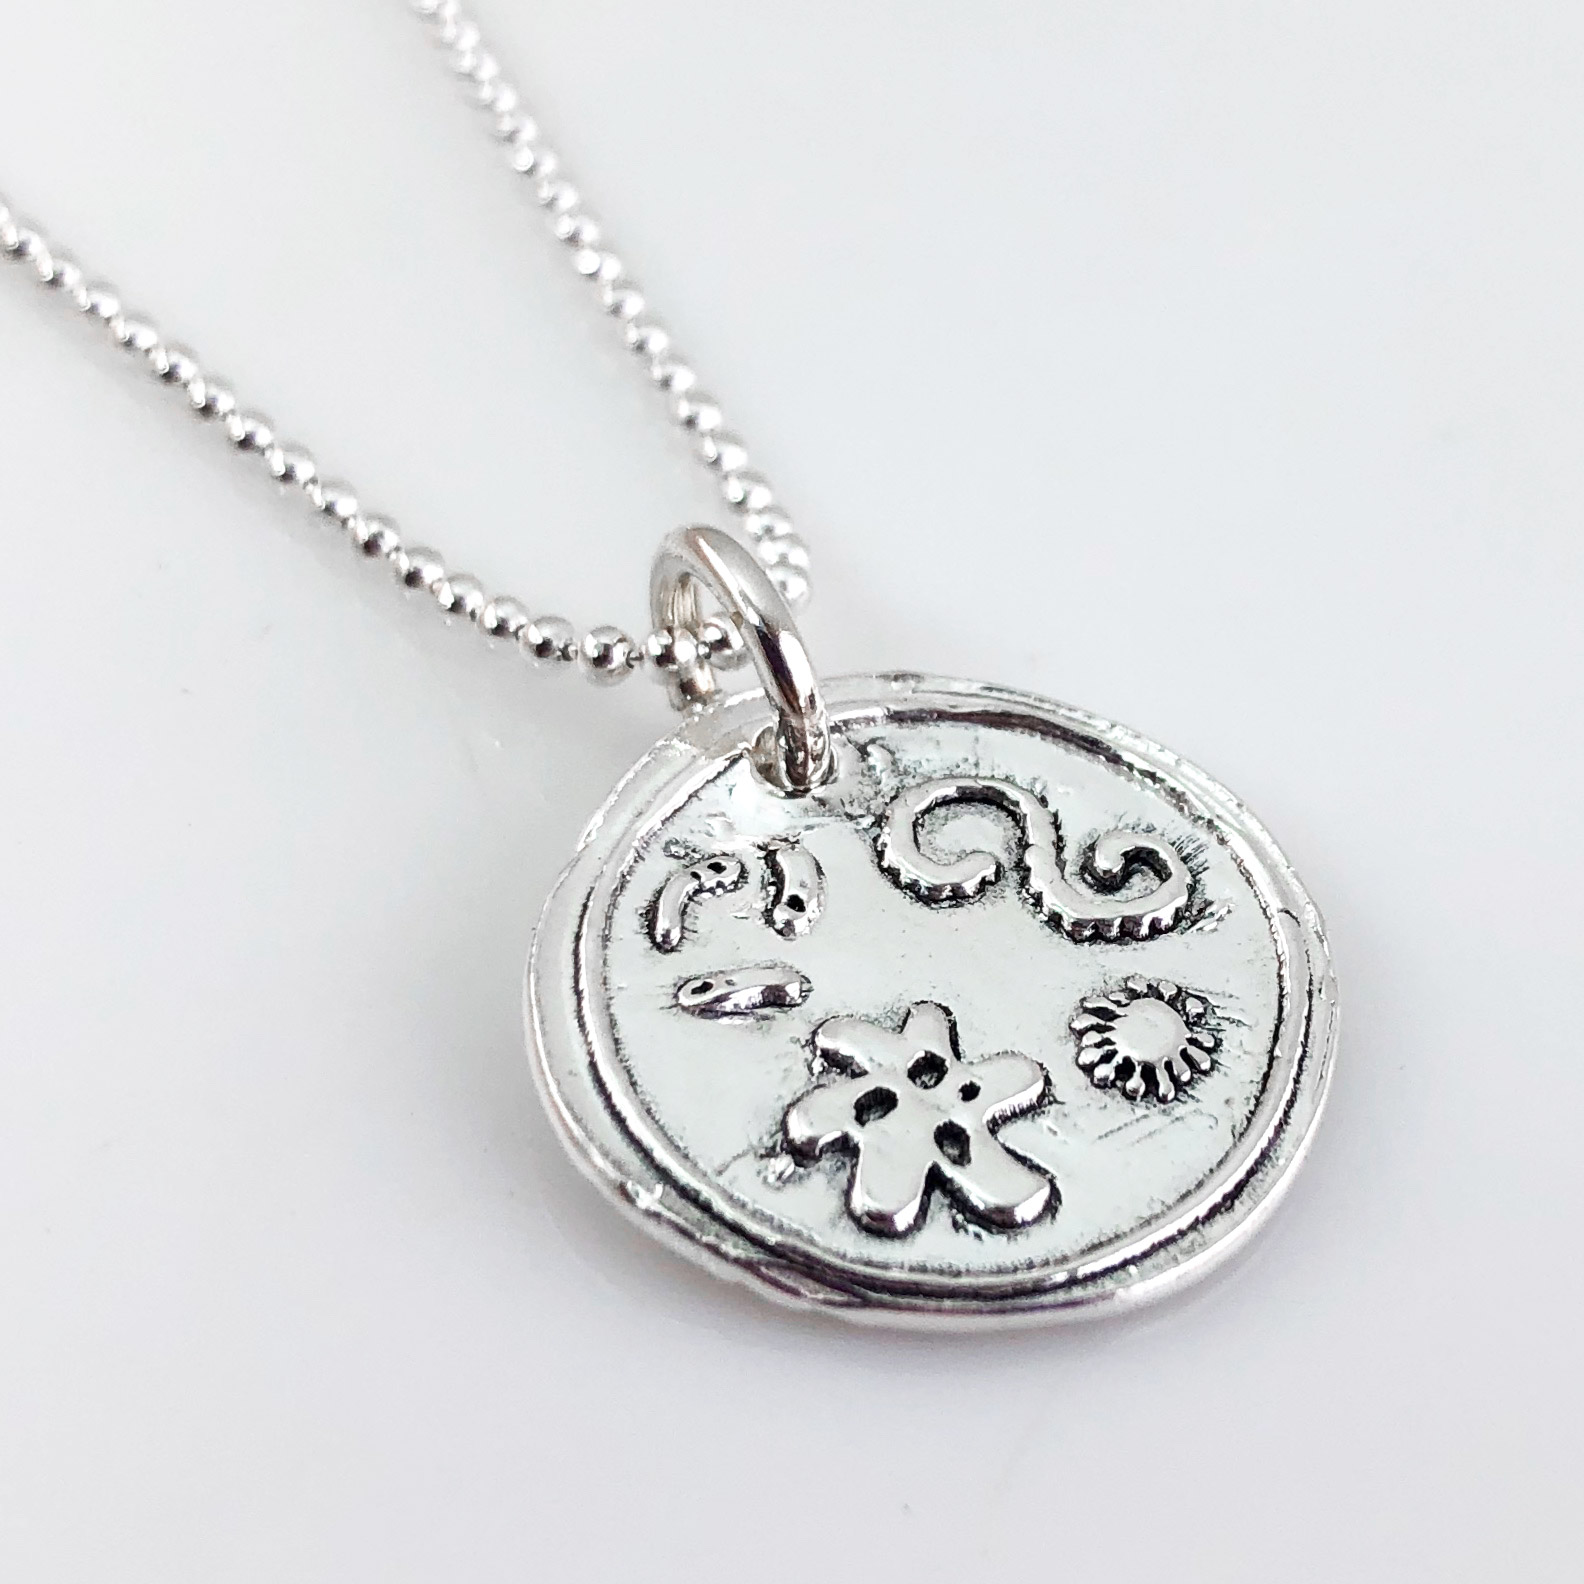 Petri Dish with Bacteria Wax Seal Necklace (Ready to Ship)